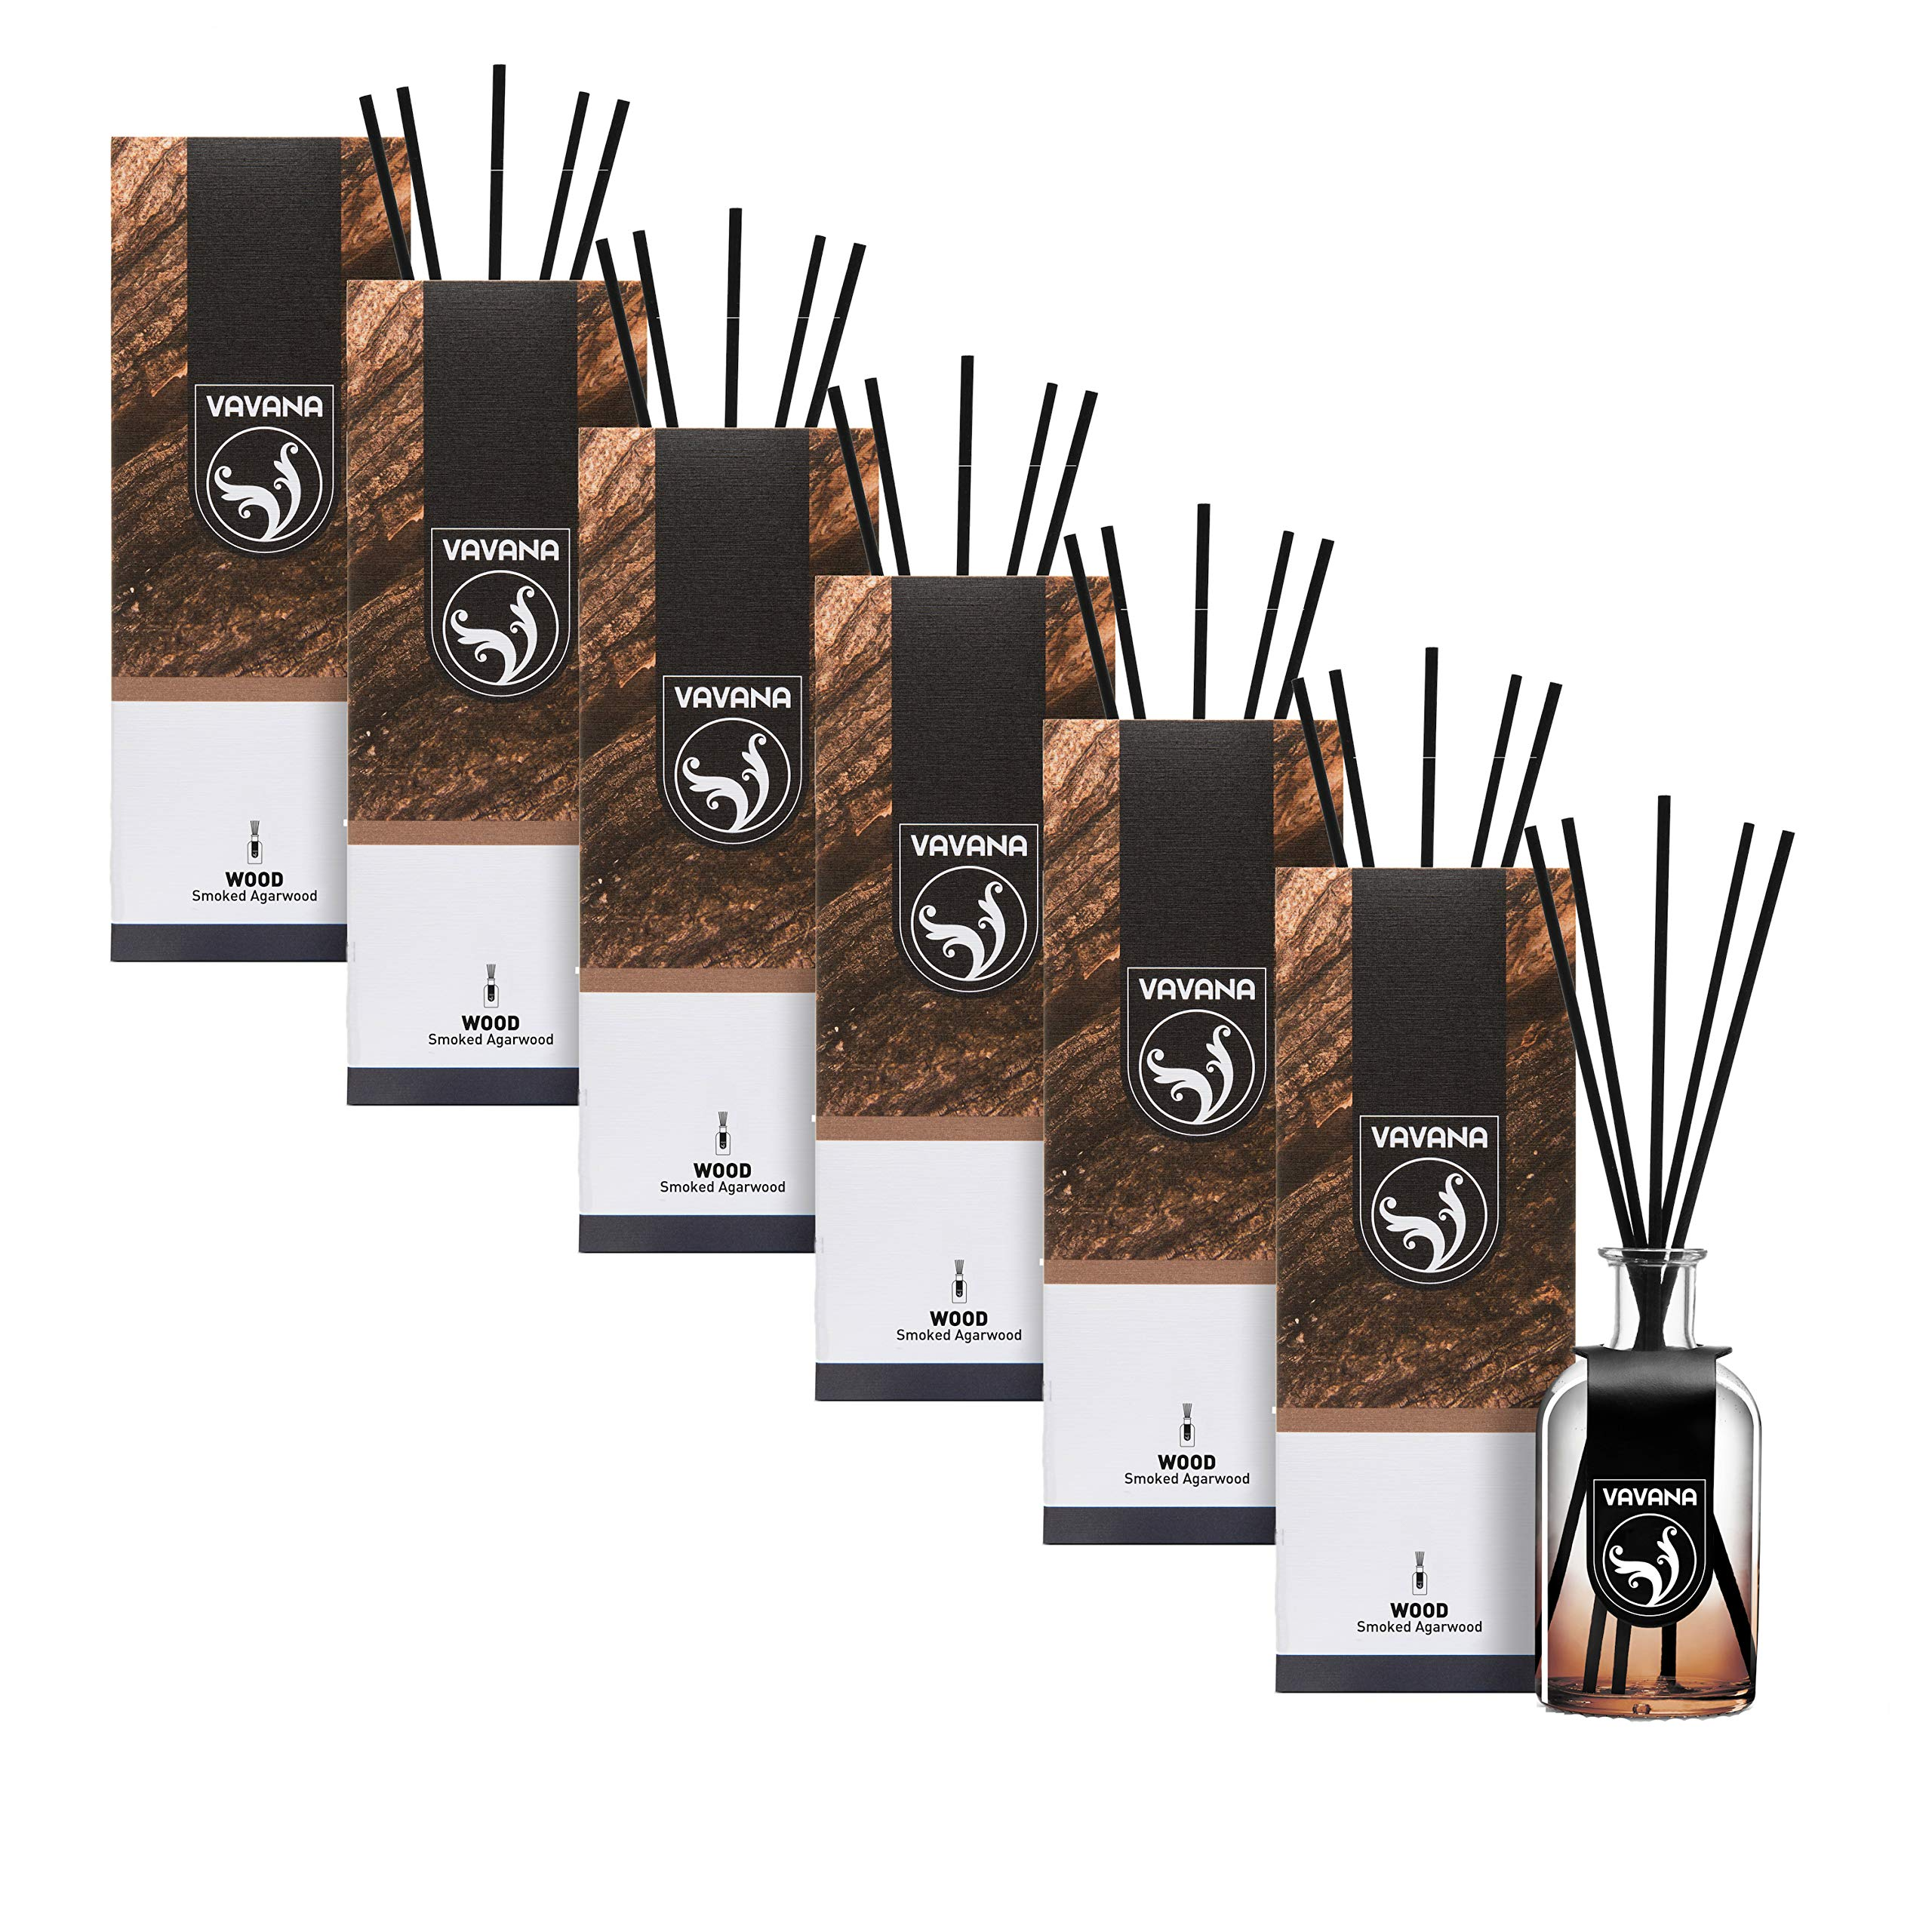 VAVANA Aromatherapy Diffuser Sticks   Reed Diffuser Set   Aromatic Home Fragrance Set   Essential Oil Diffuser Sticks, Made of Natural Scented Oils Blend   100 ML/3.4 OZ - 6 Pack (Smoked A.Wood) by vavana (Image #3)